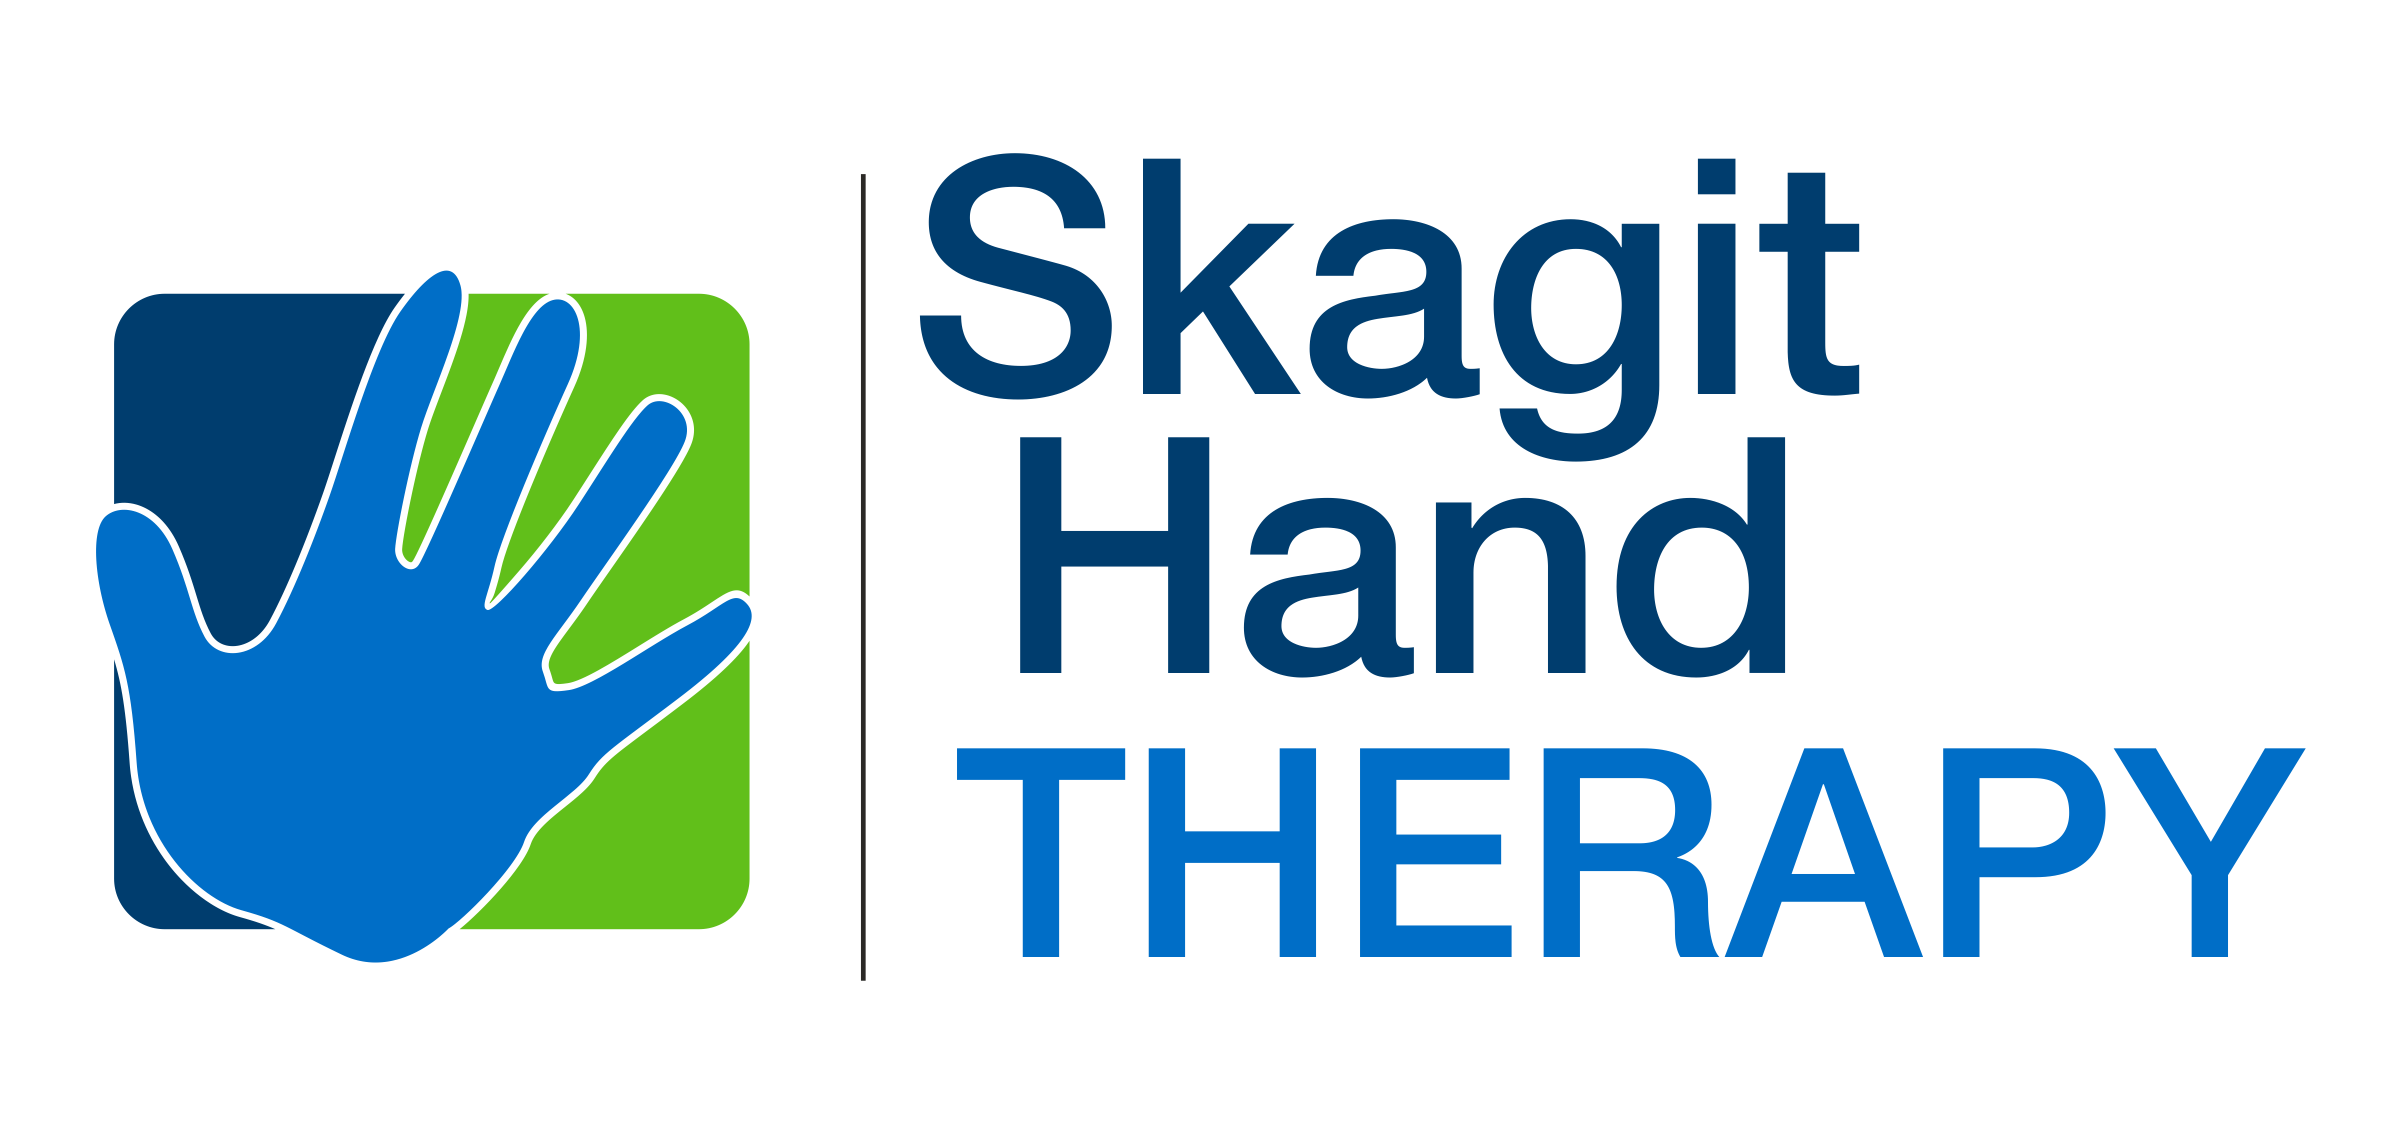 Skagit hand Therapy